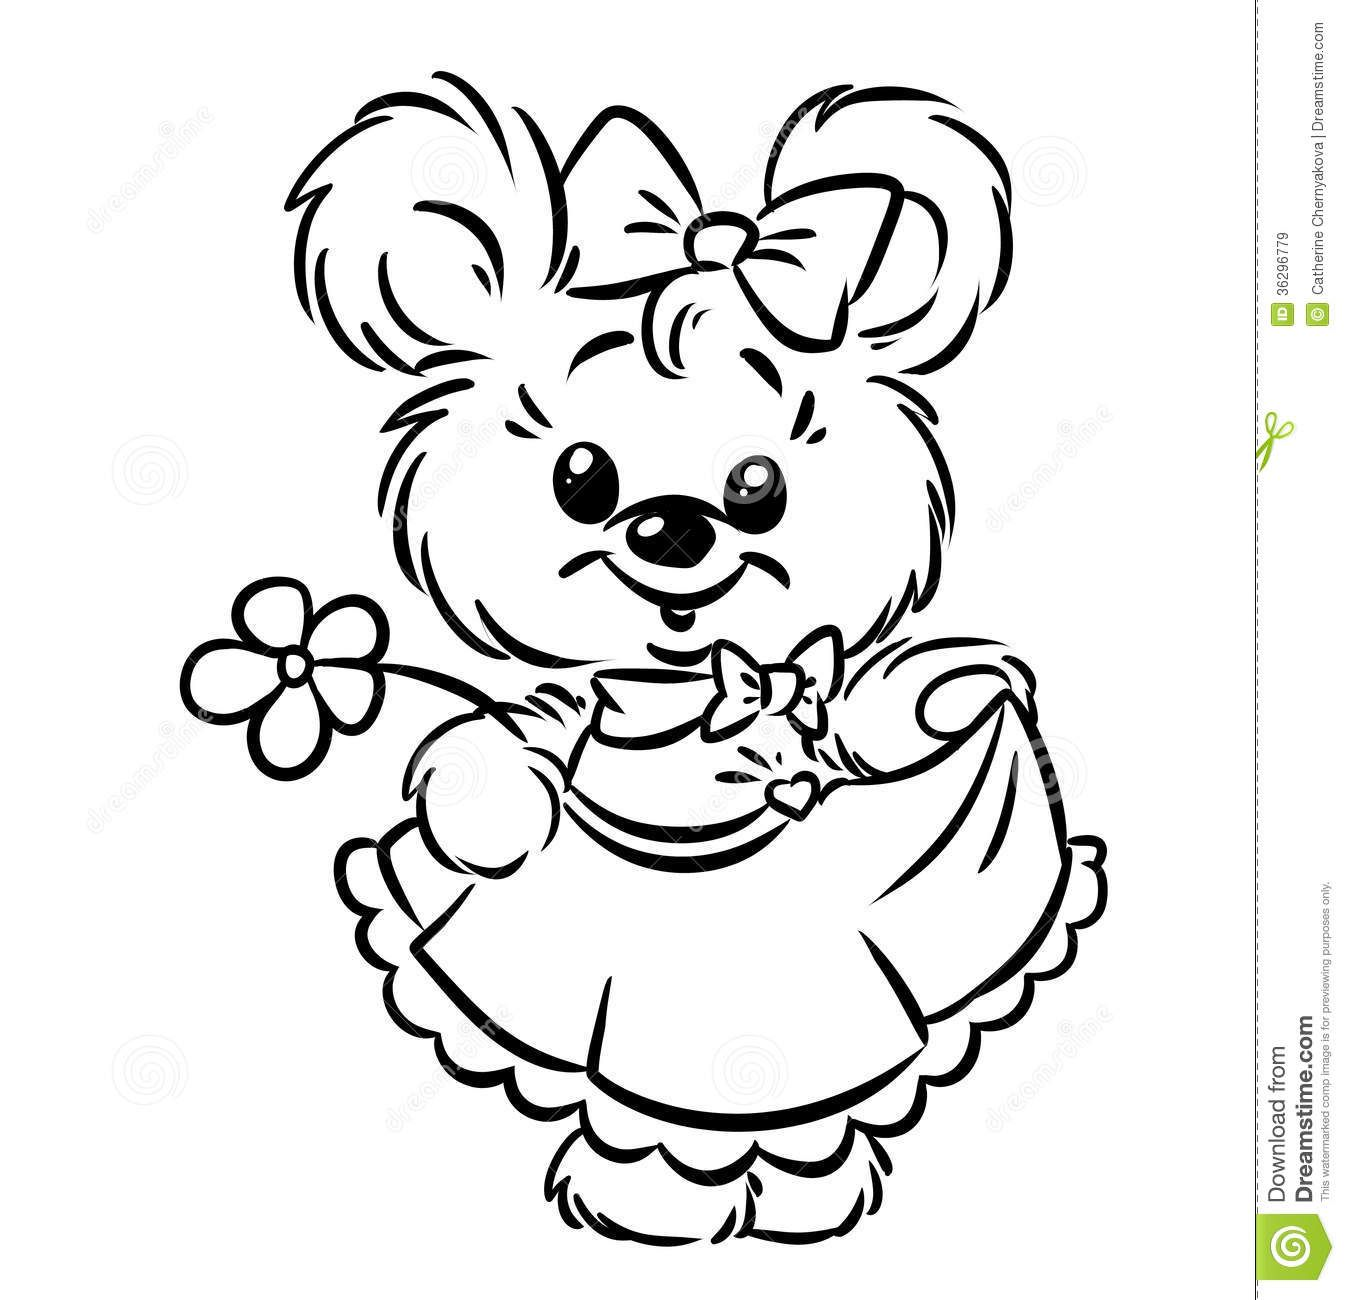 Royalty Free Stock Images: Bear girl flower coloring pages. Image ...